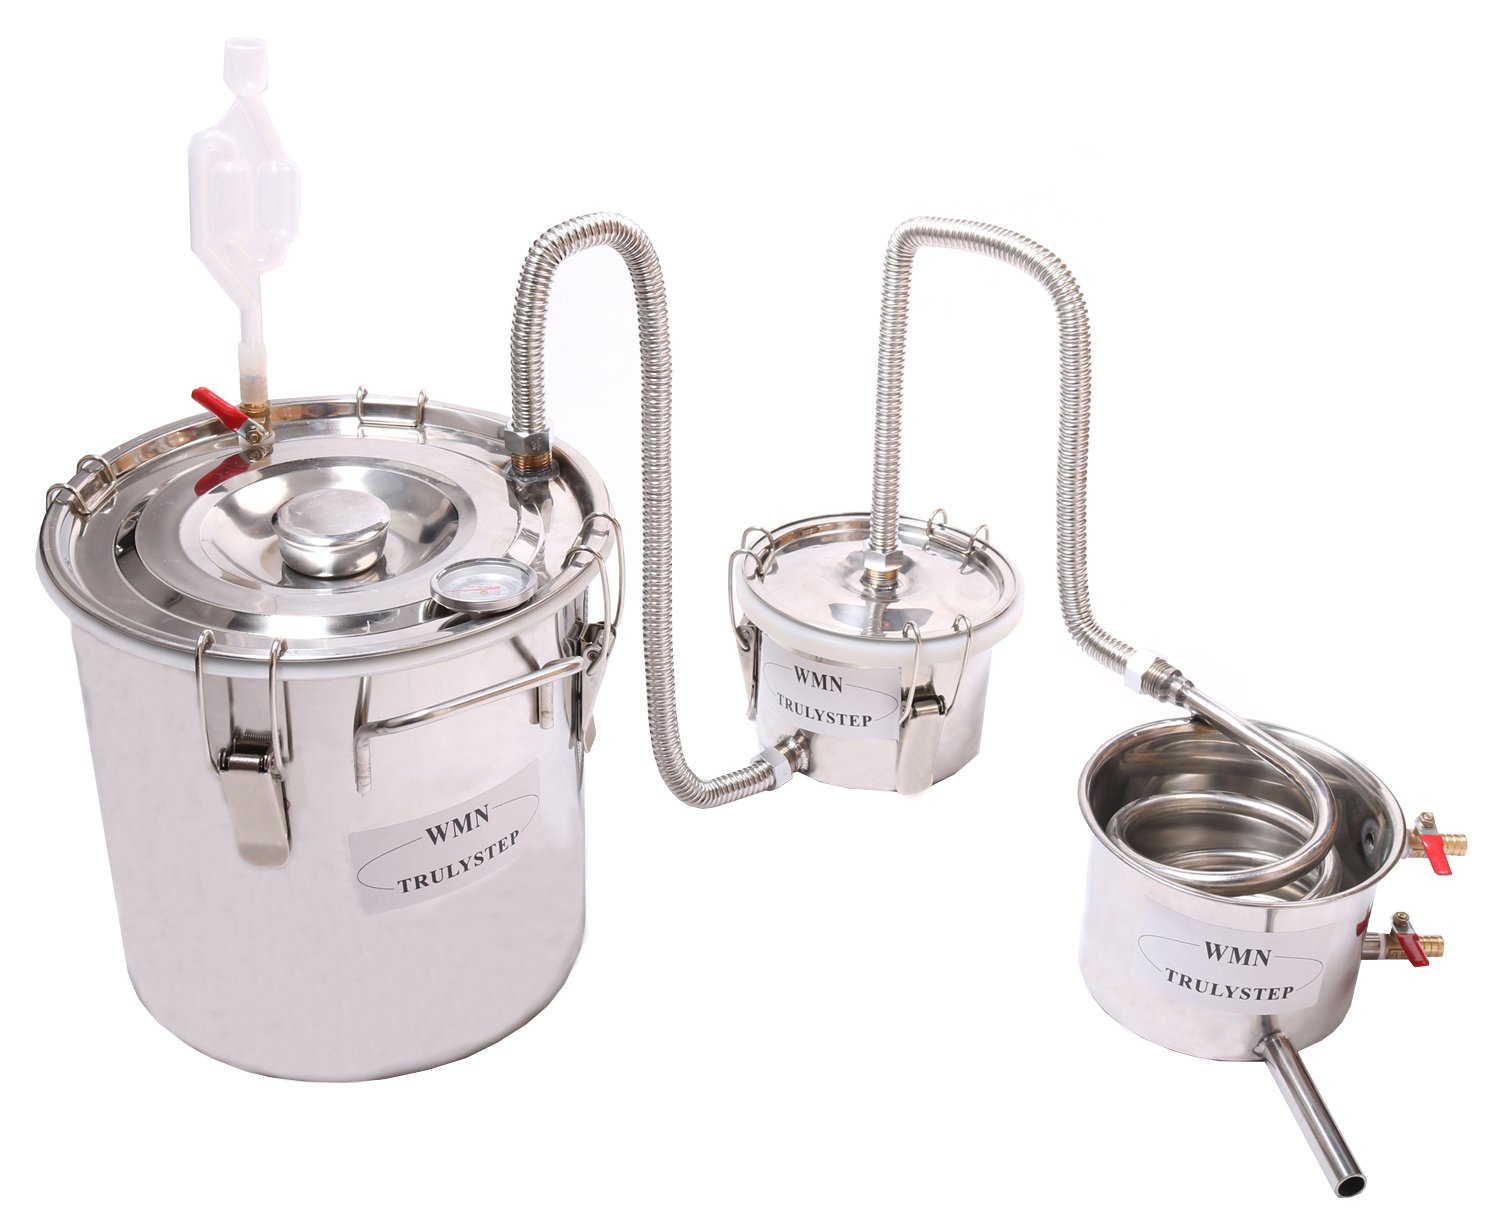 New 3 Pots DIY 3 Gal 12 Litres Alcohol Moonshine Ethanol Still Spirits Stainless Steel Boiler Water Distiller Whiskey Wine Making Kit by WMN_TRULYSTEP (Image #9)